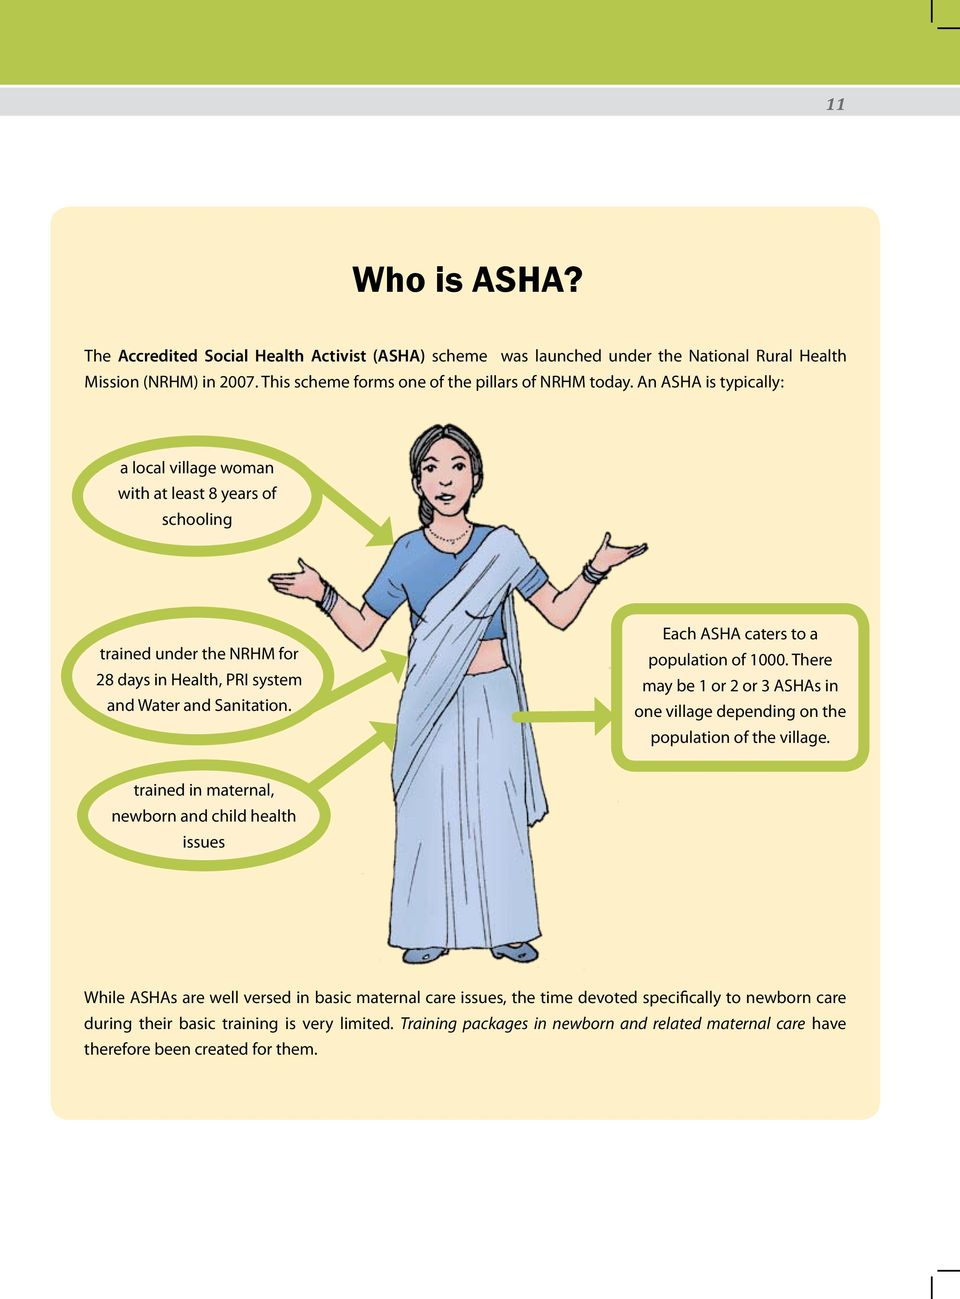 Each ASHA caters to a population of 1000. There may be 1 or 2 or 3 ASHAs in one village depending on the population of the village.